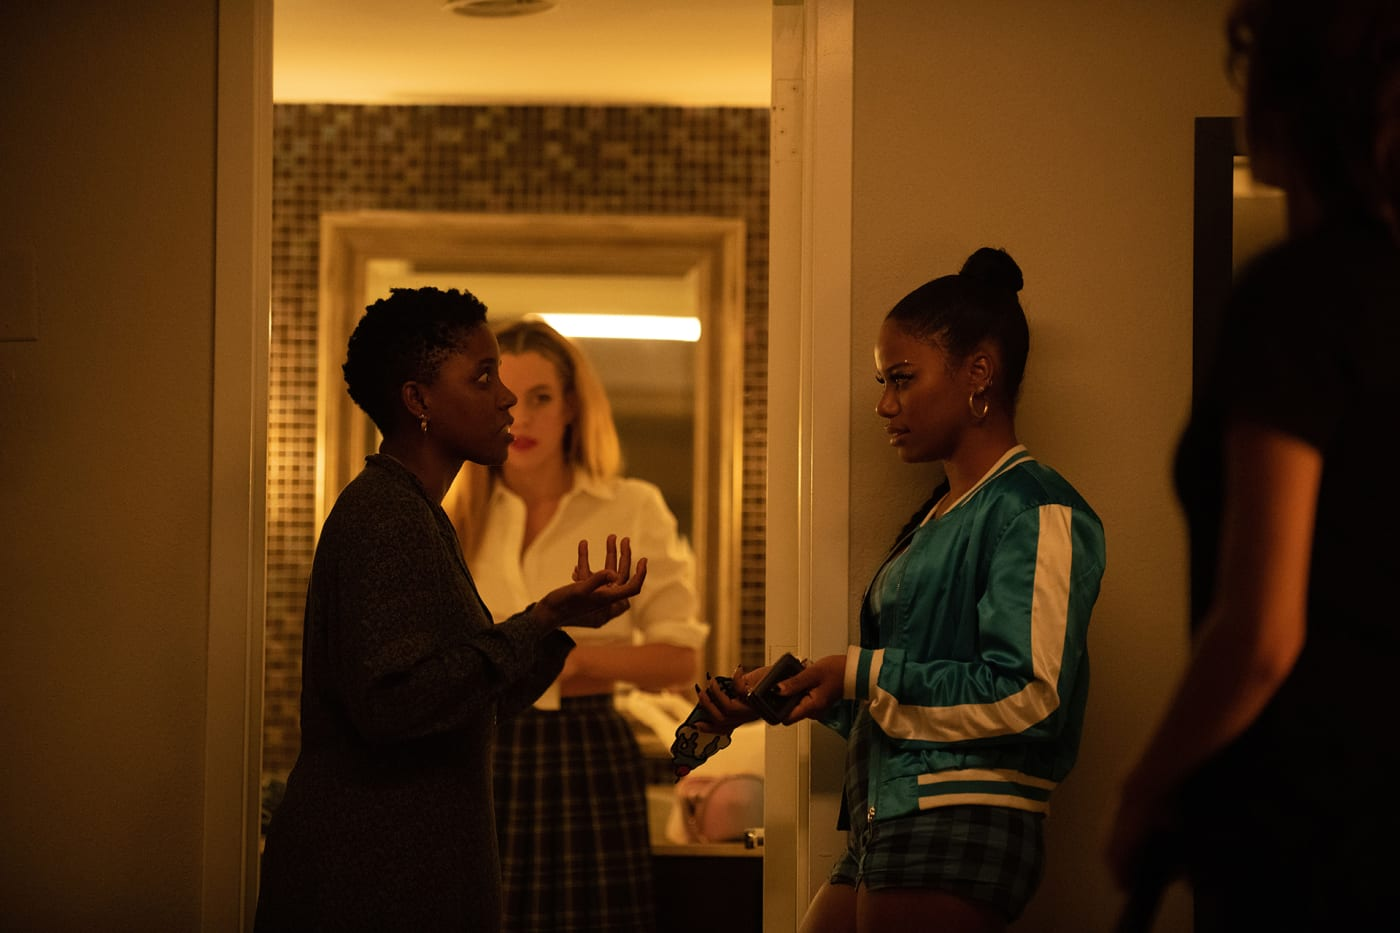 Janicza Bravo, Riley Keough, and Taylour Paige, A24's 'Zola' behind the scenes